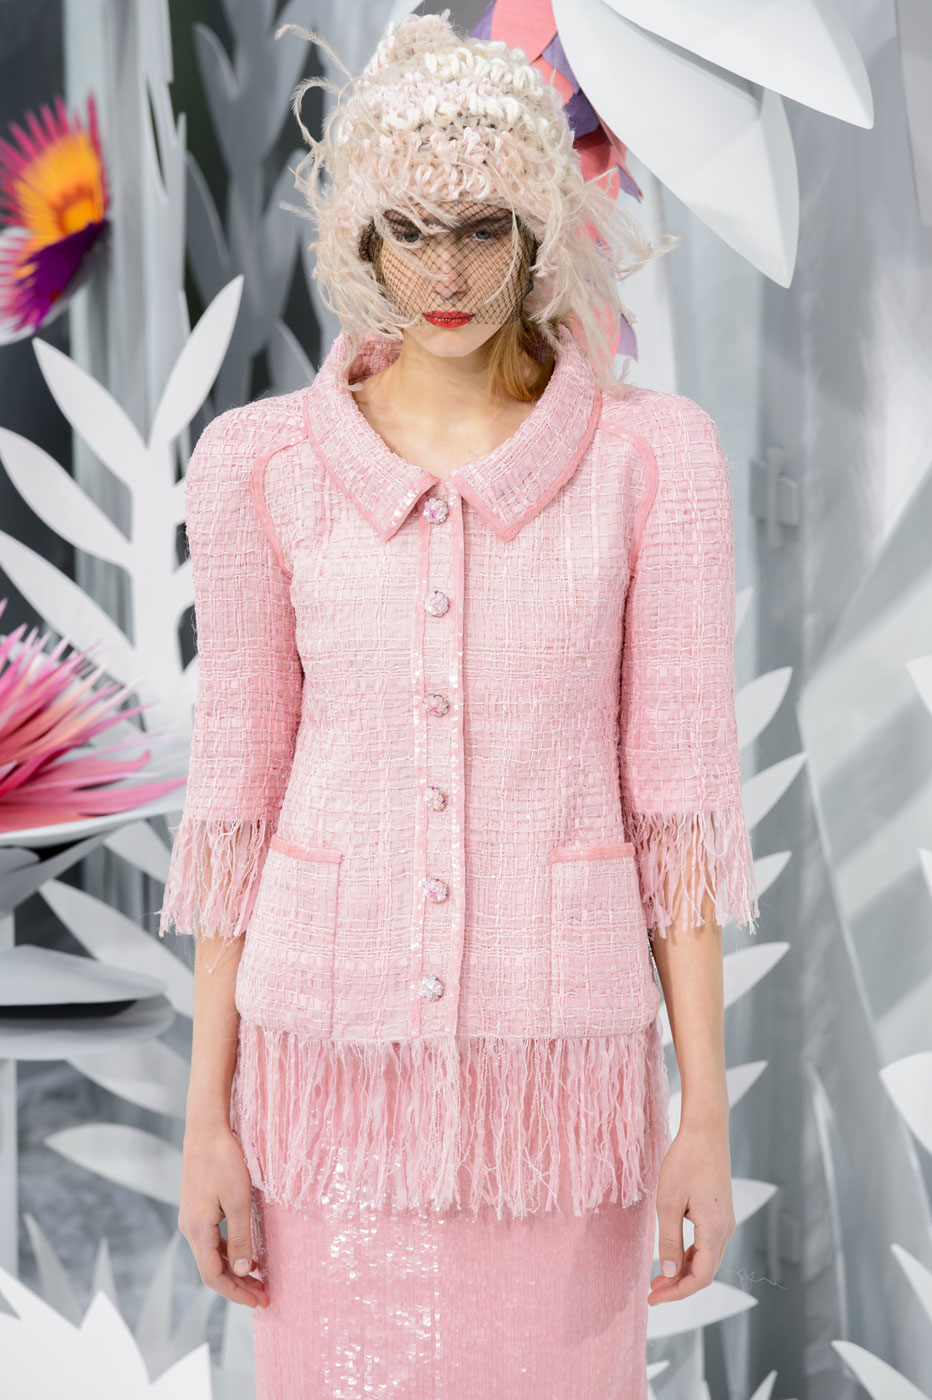 Chanel-fashion-runway-show-haute-couture-paris-spring-summer-2015-the-impression-072